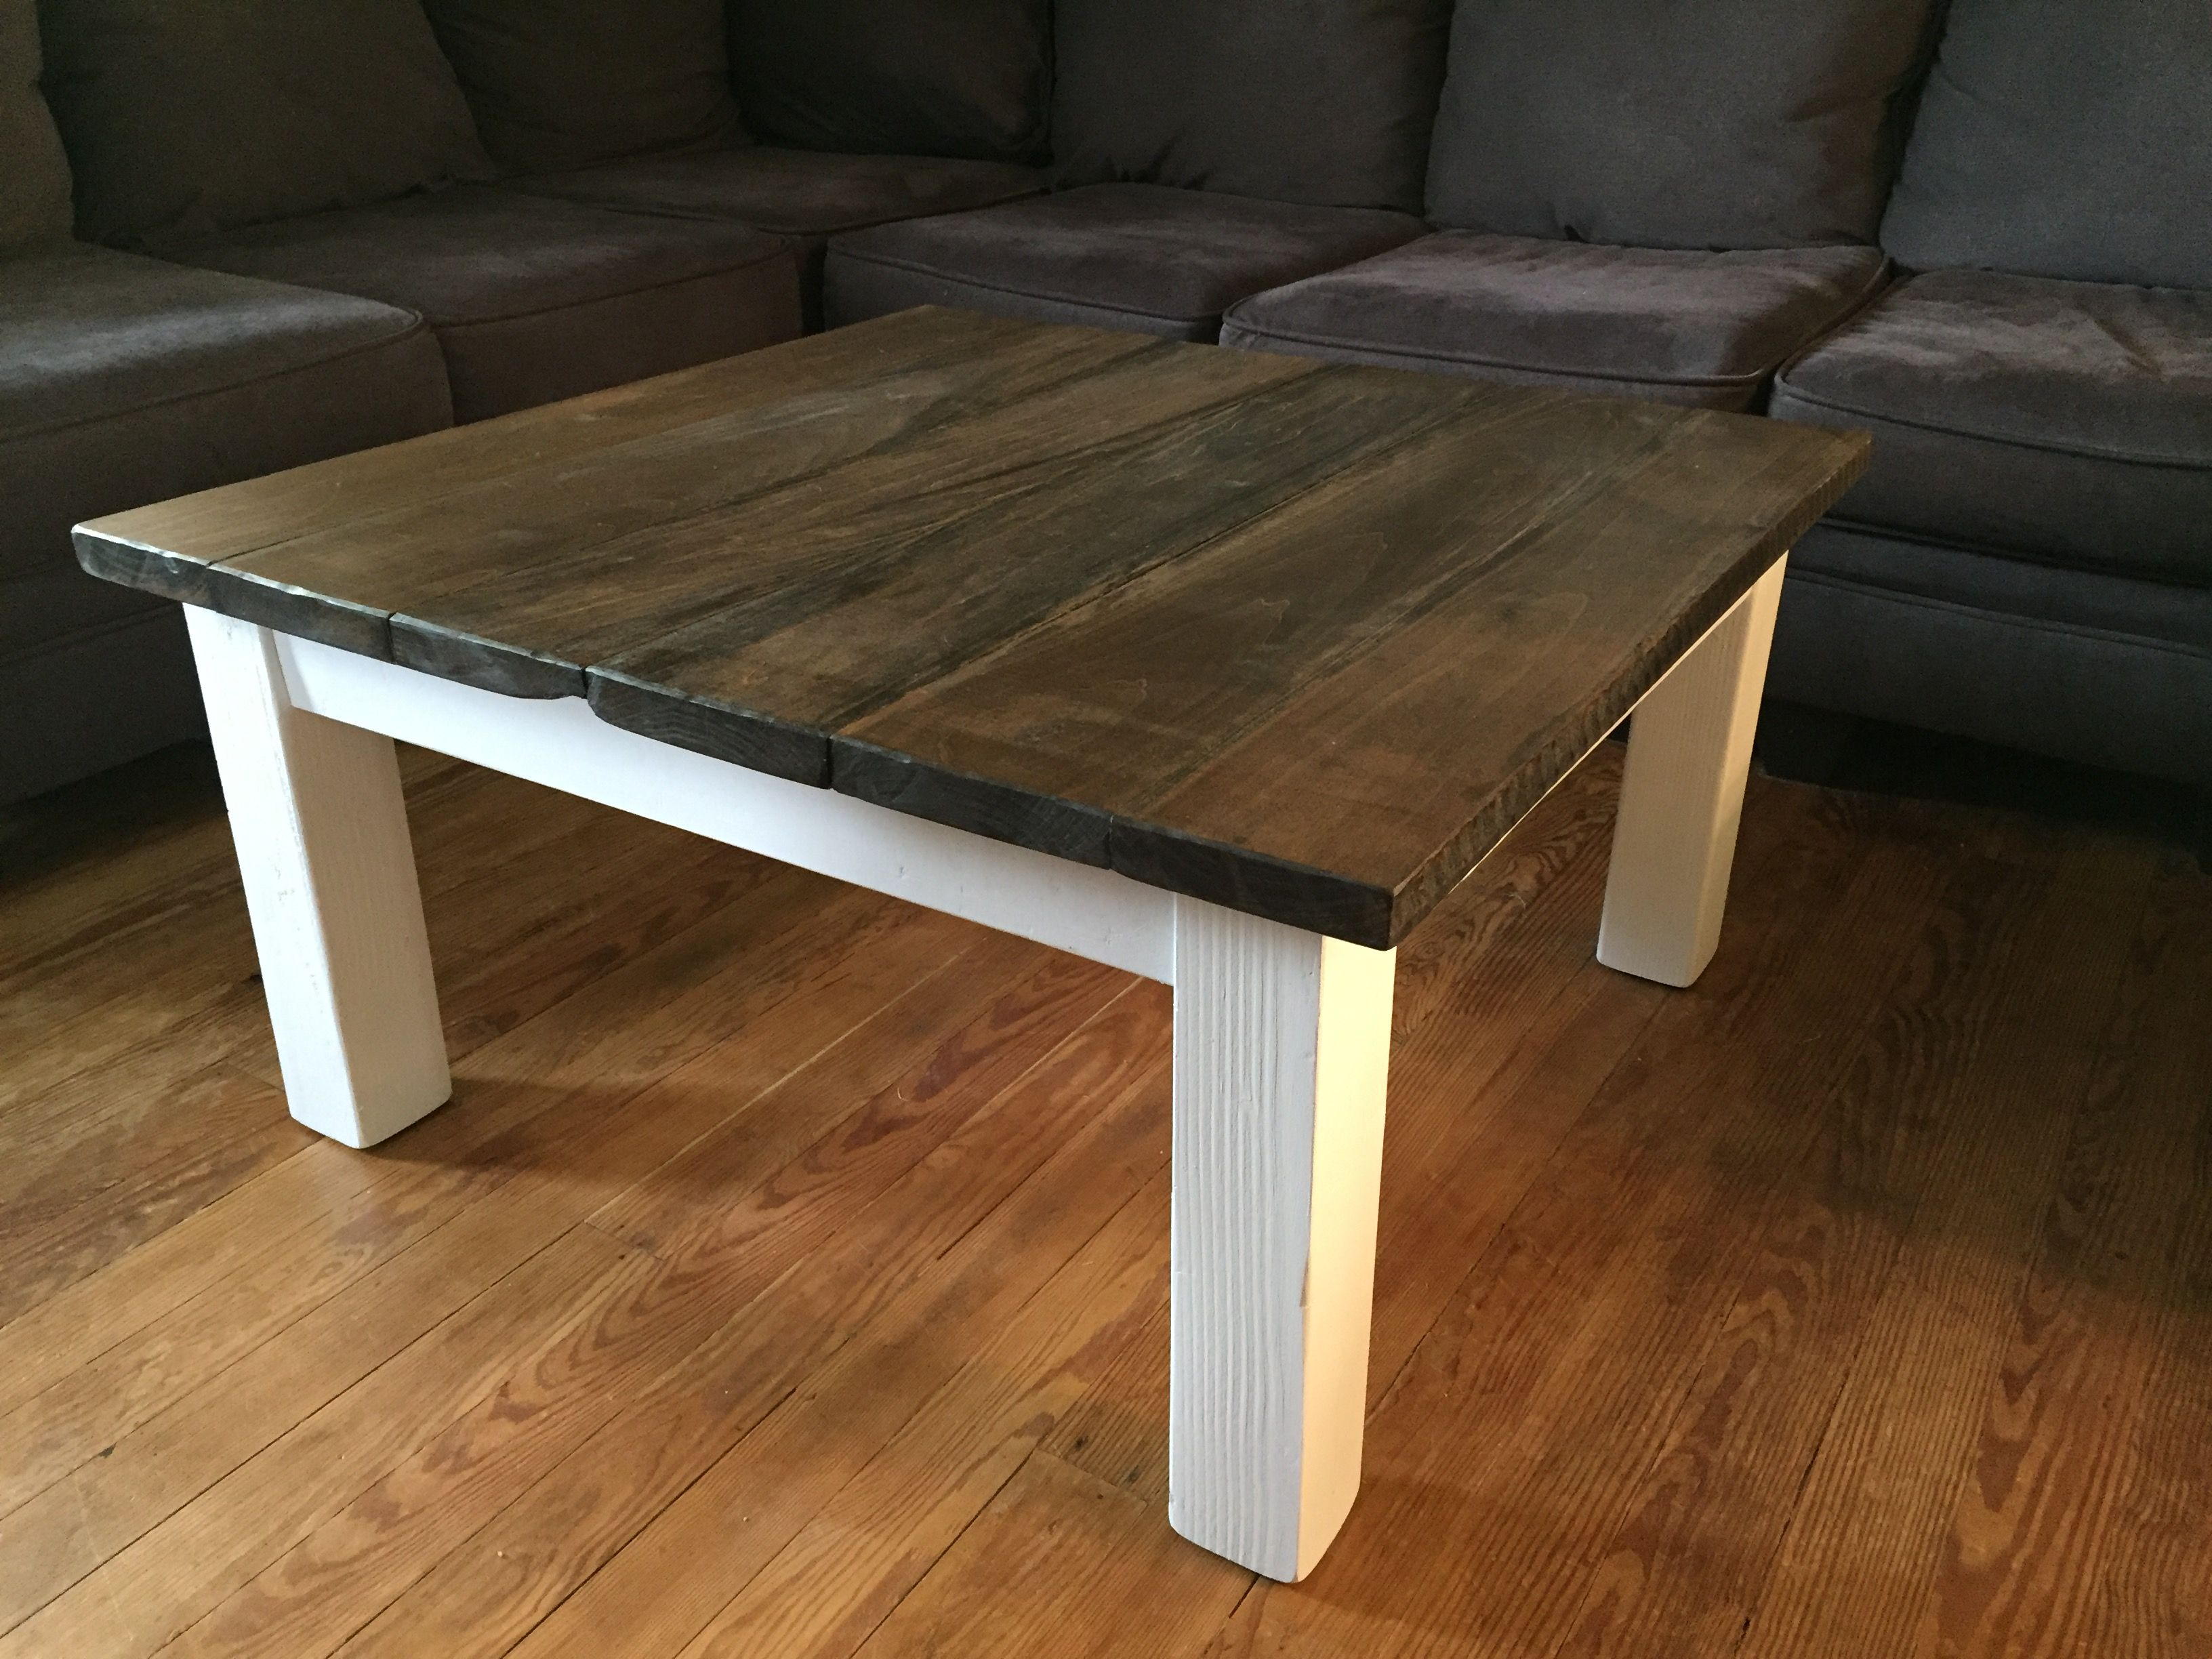 Coffee Table Mg Table Co Mgtables Com Real Wood Furniture Coffee Table Table [ 2448 x 3264 Pixel ]